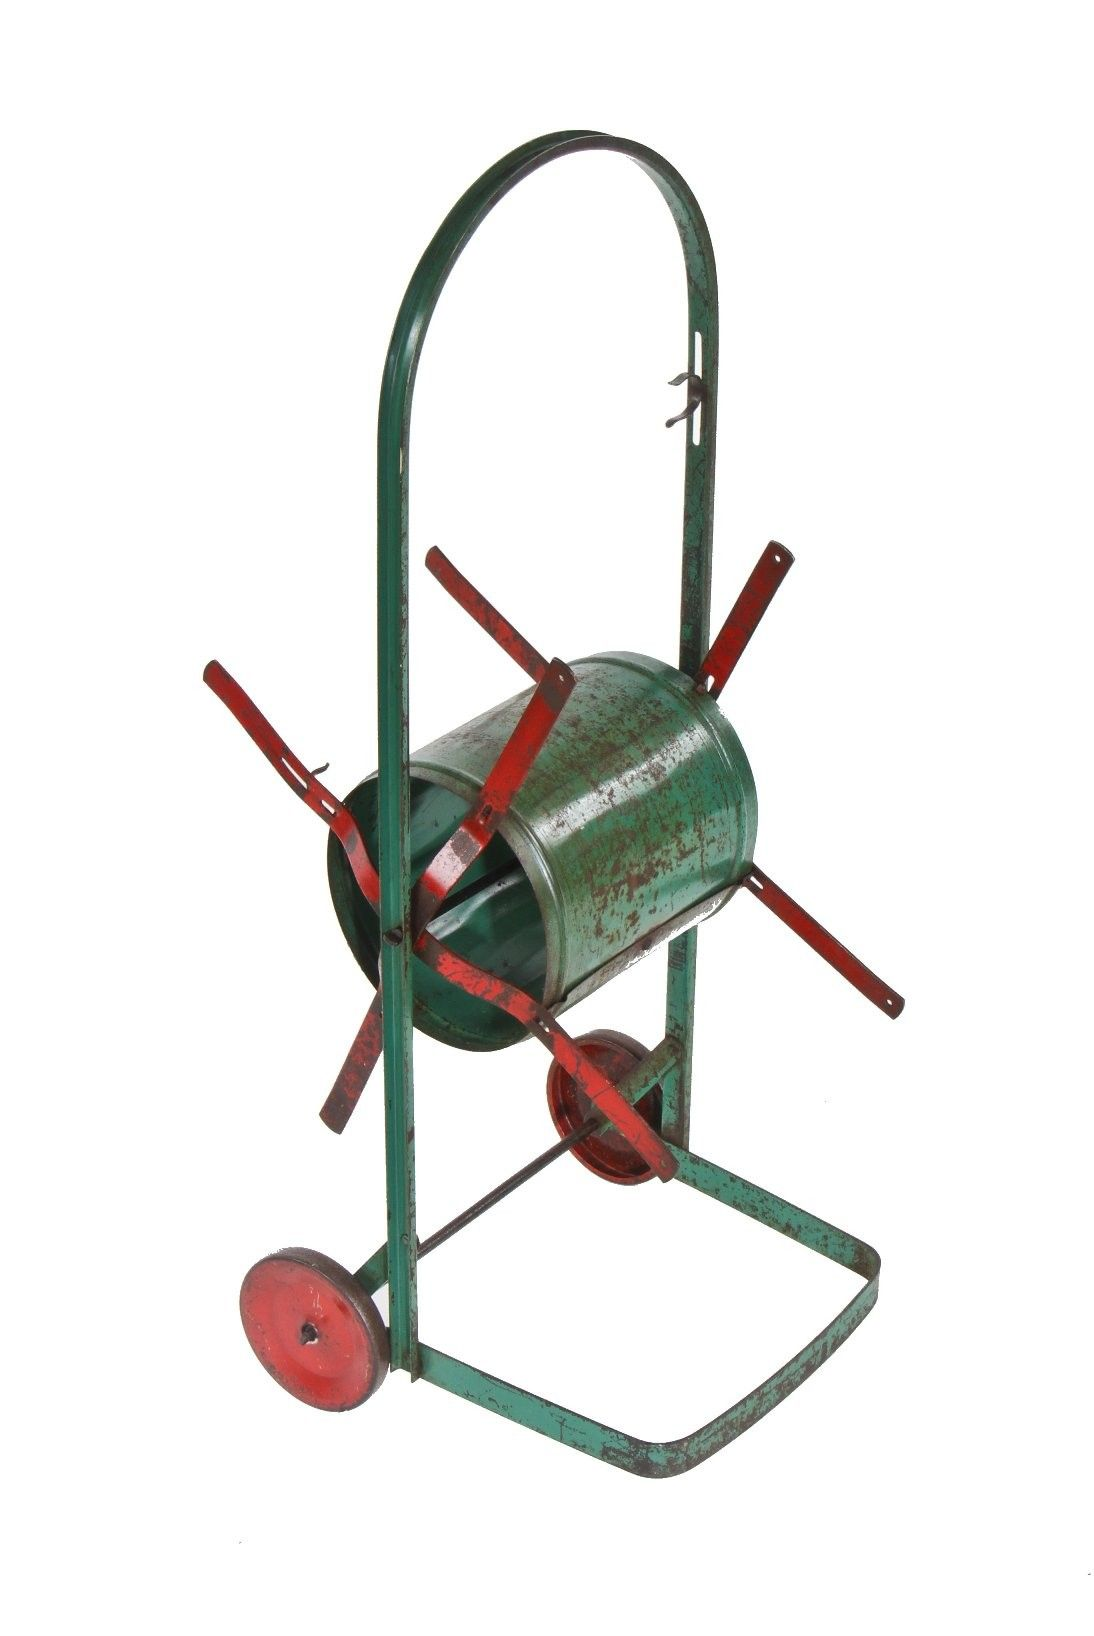 original and intact c. 1940's american vintage industrial painted steel winding water hose reel combined with mobile cart